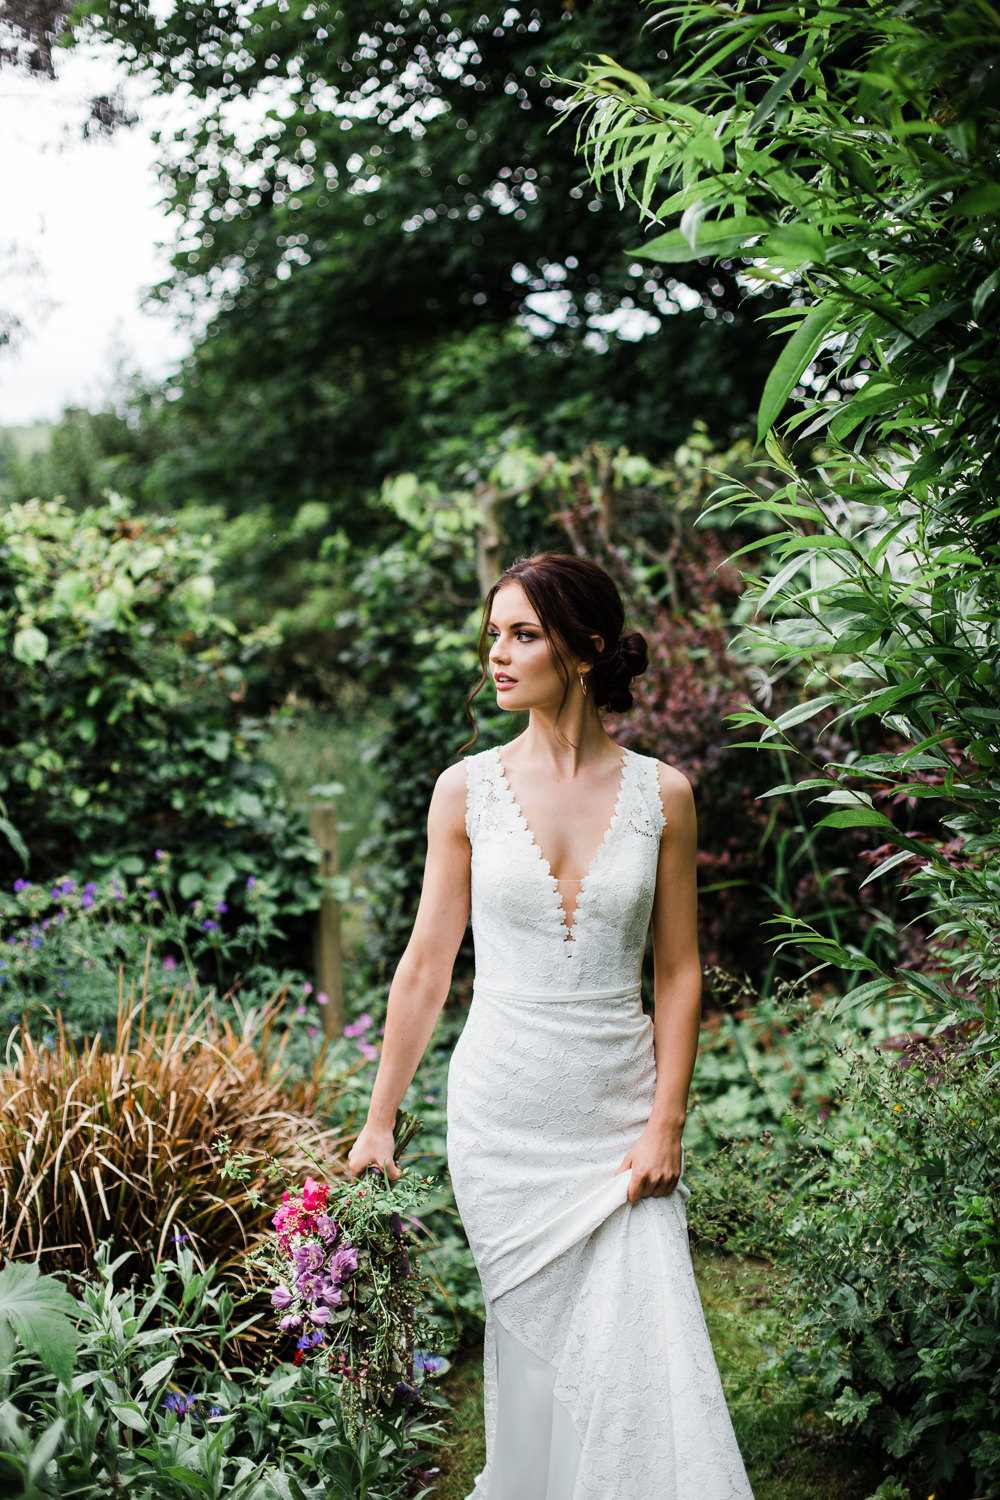 Bride Bridal Dress Gown Lace Train Plunge Colourful Bohemian Floral Wedding Ideas Anna Beth Photography